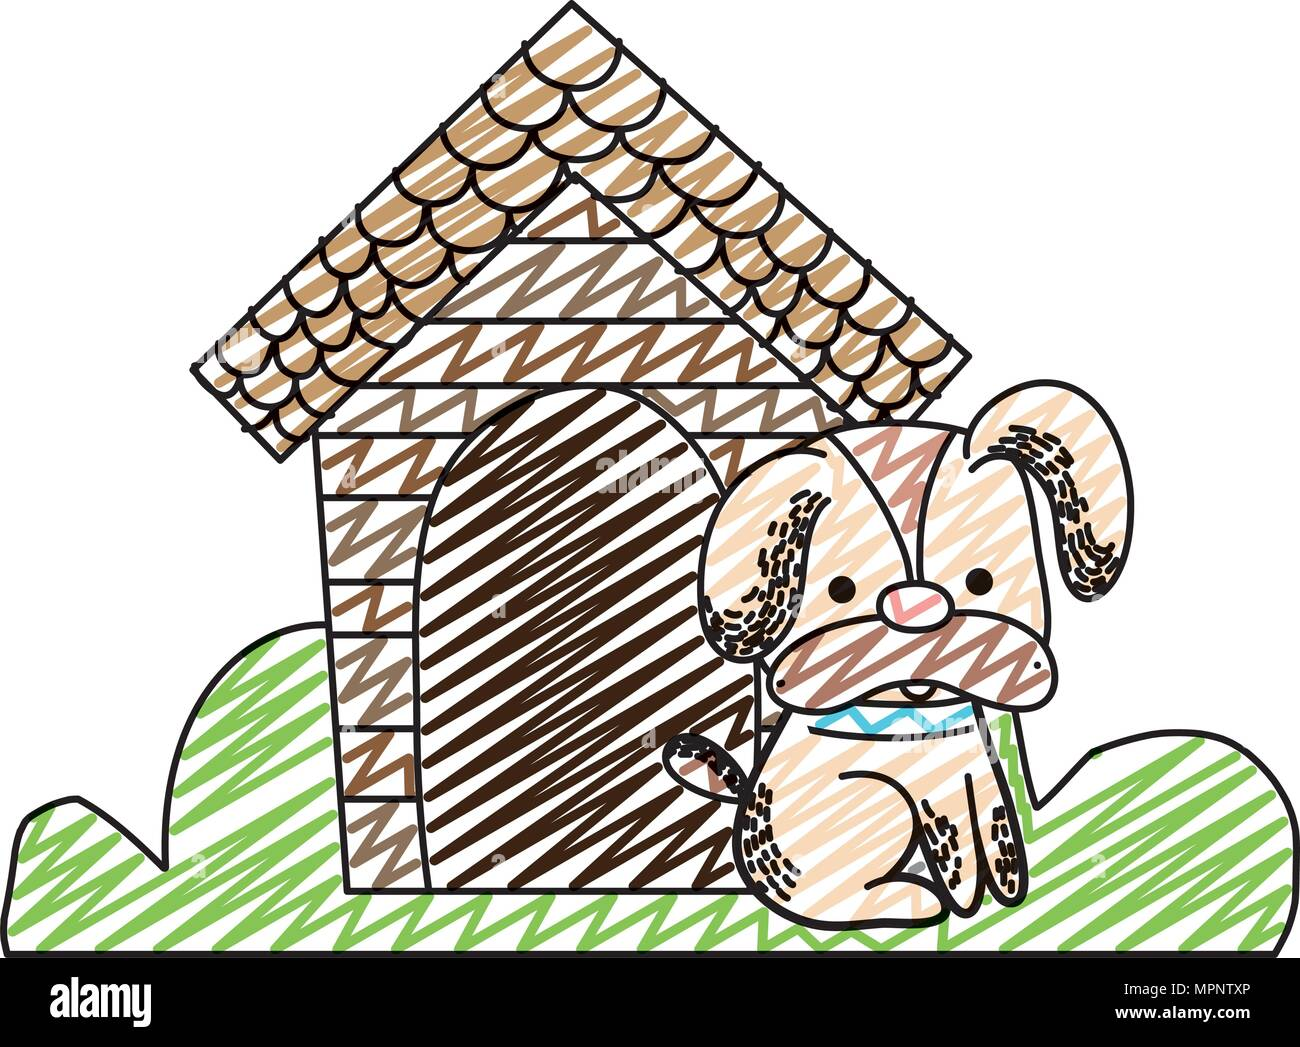 doodle cute dog pet animal with house - Stock Image